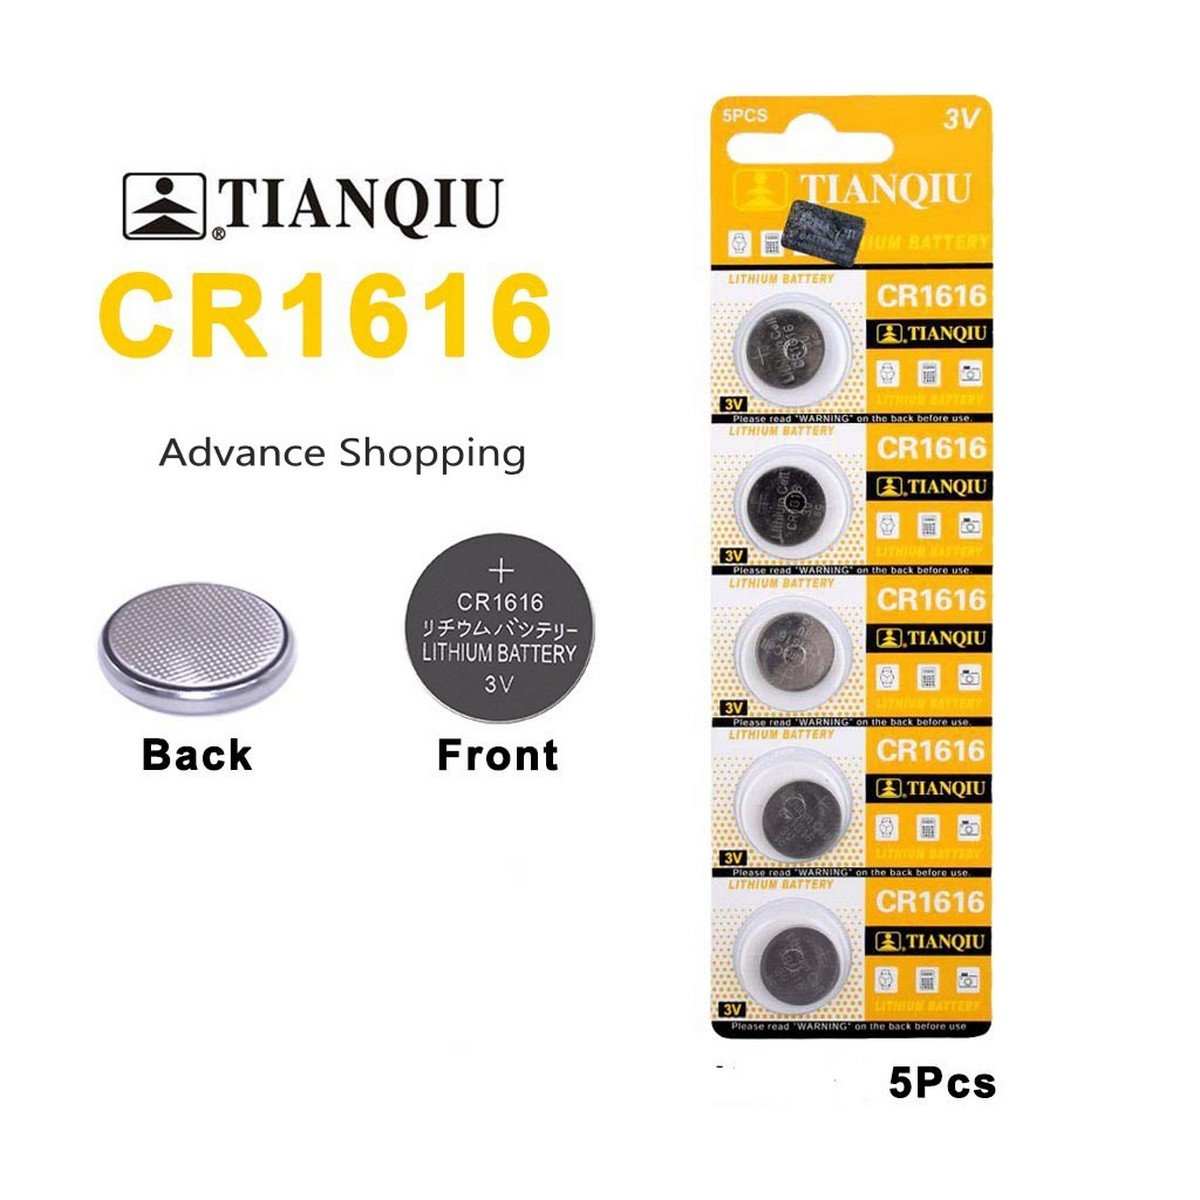 5pcs/pack CR1616 Button Batteries DL1616 ECR1616 LM1616 Cell Coin Lithium Battery 3V CR 1616 For Watch Electronic Toy Remote